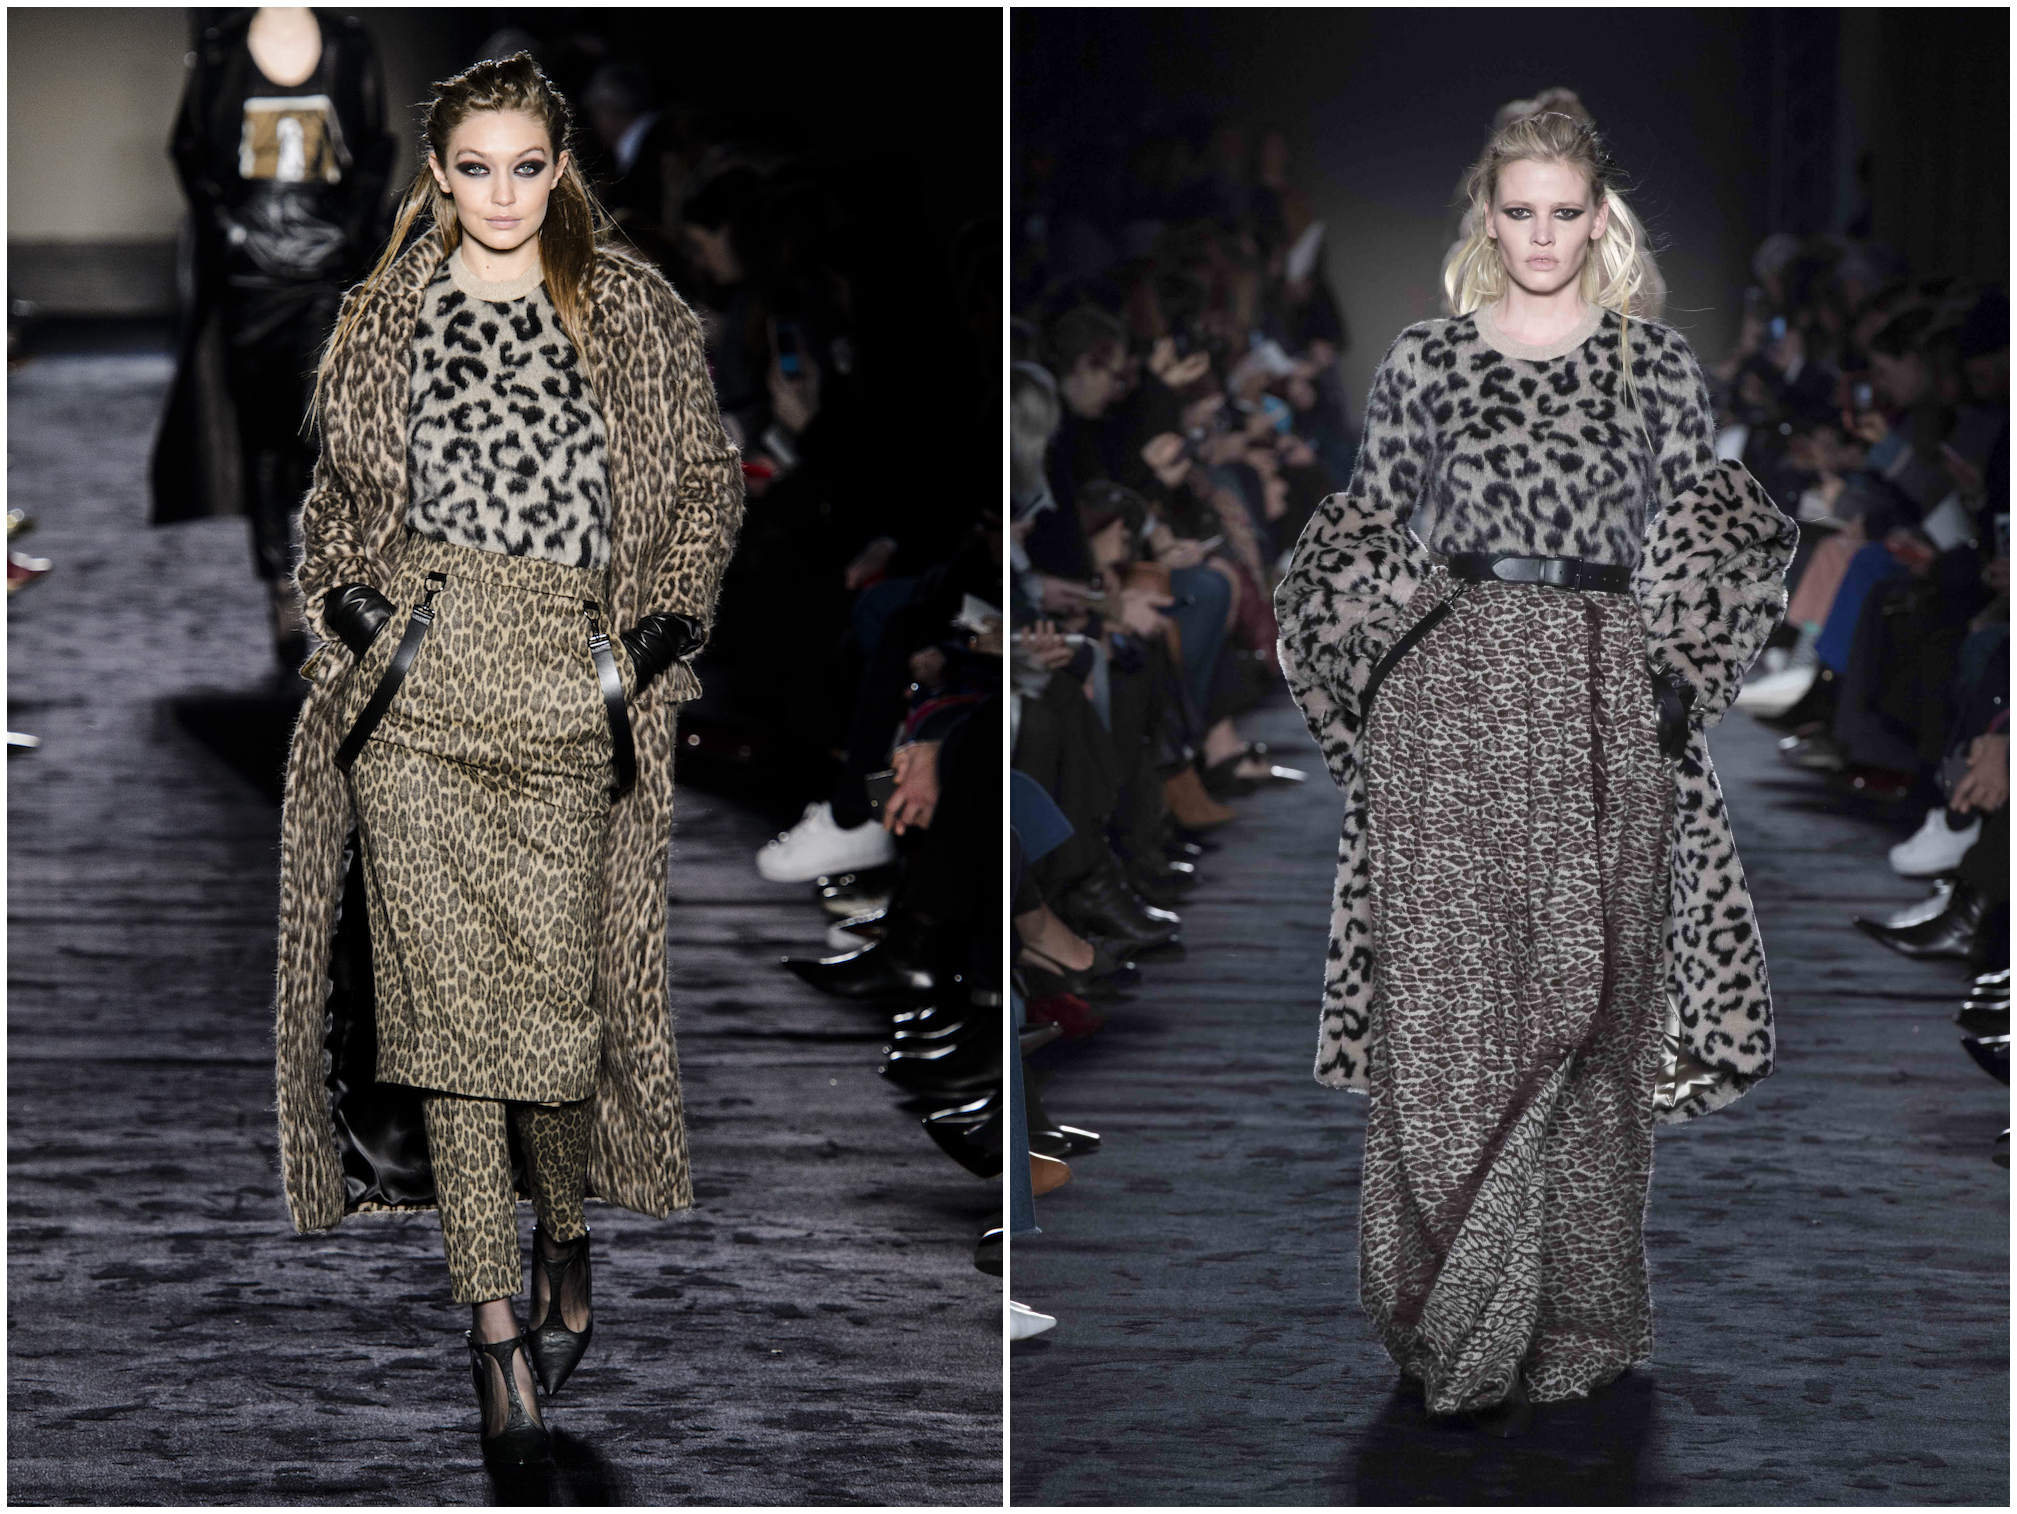 7bc88bf85502 And even Victoria Beckham couldn't resist this craze. In addition to  traditional leopard print, Tom Ford bring us into a more colorful and  wilder leopard ...